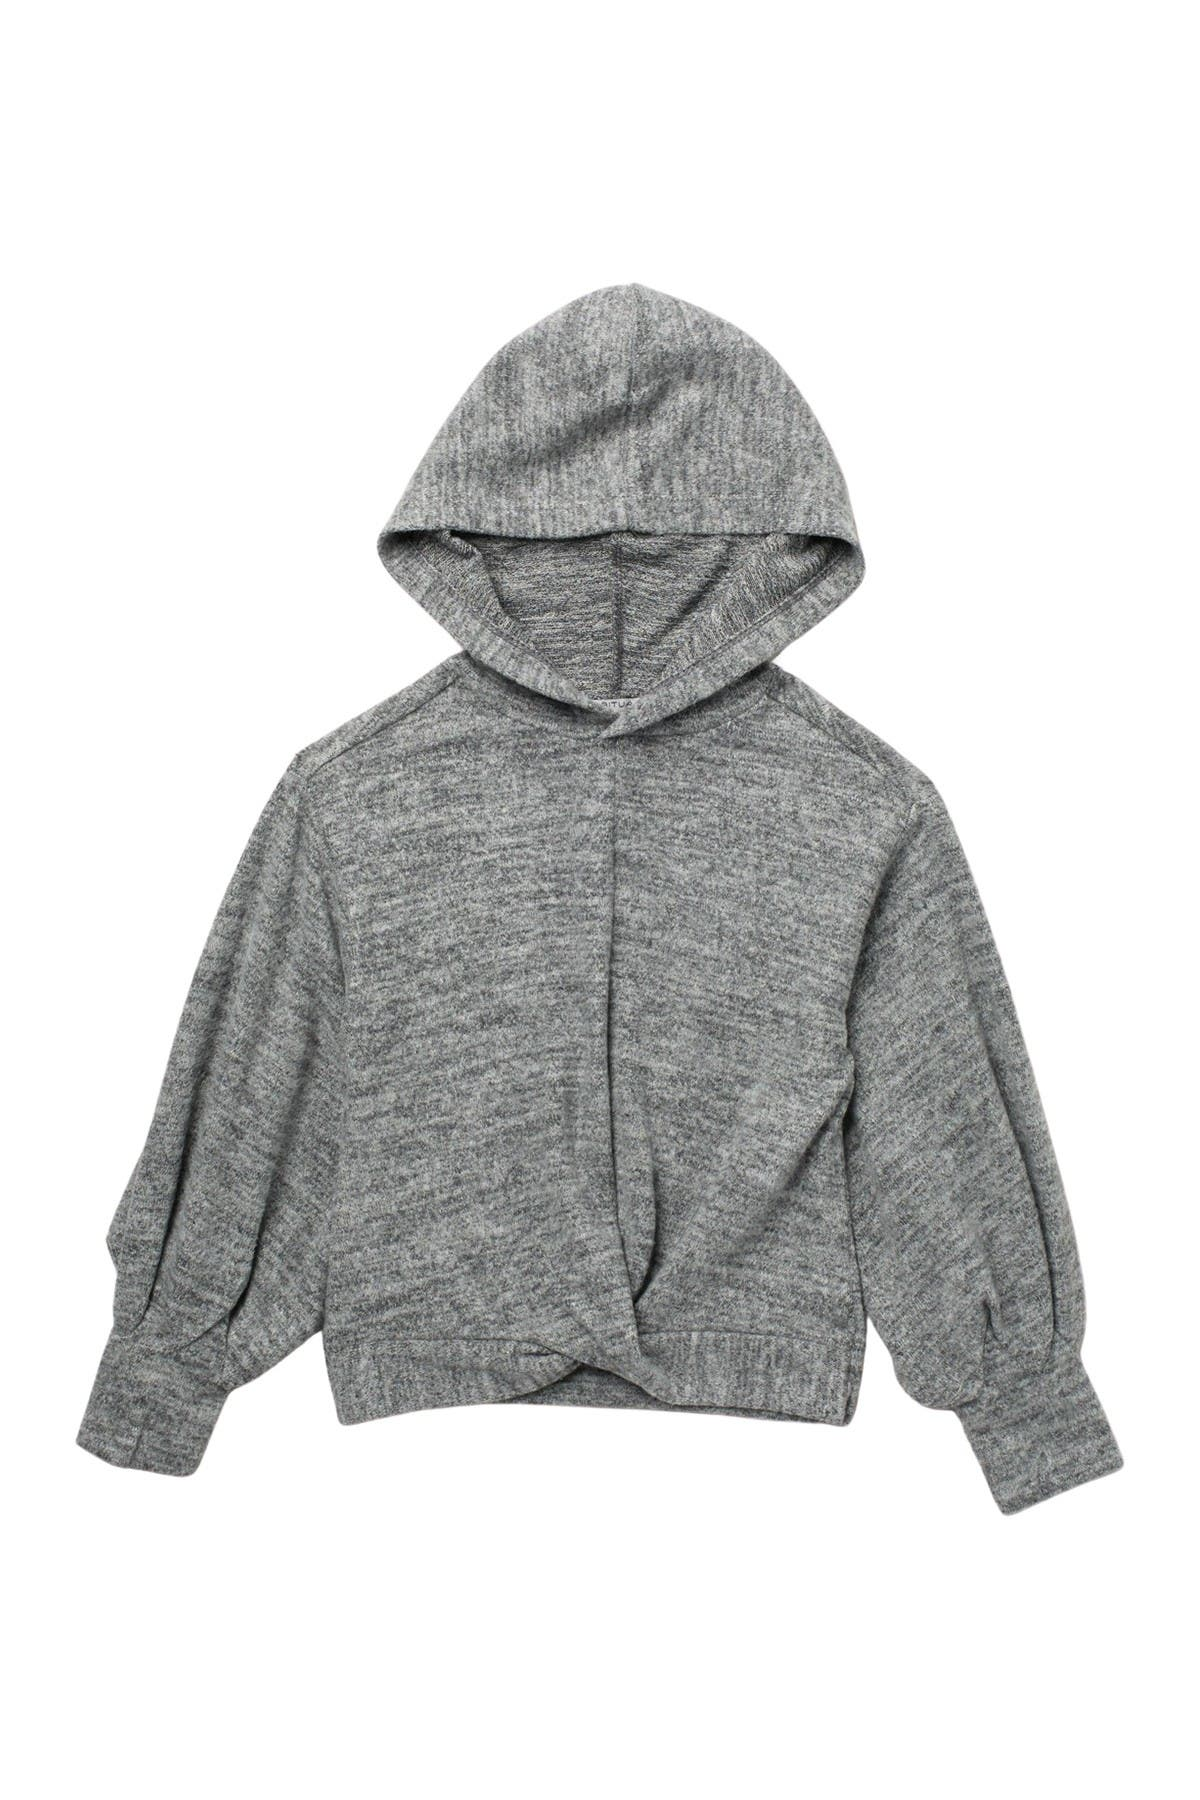 Image of Habitual Haven Hatchi Twist Hoodie Top